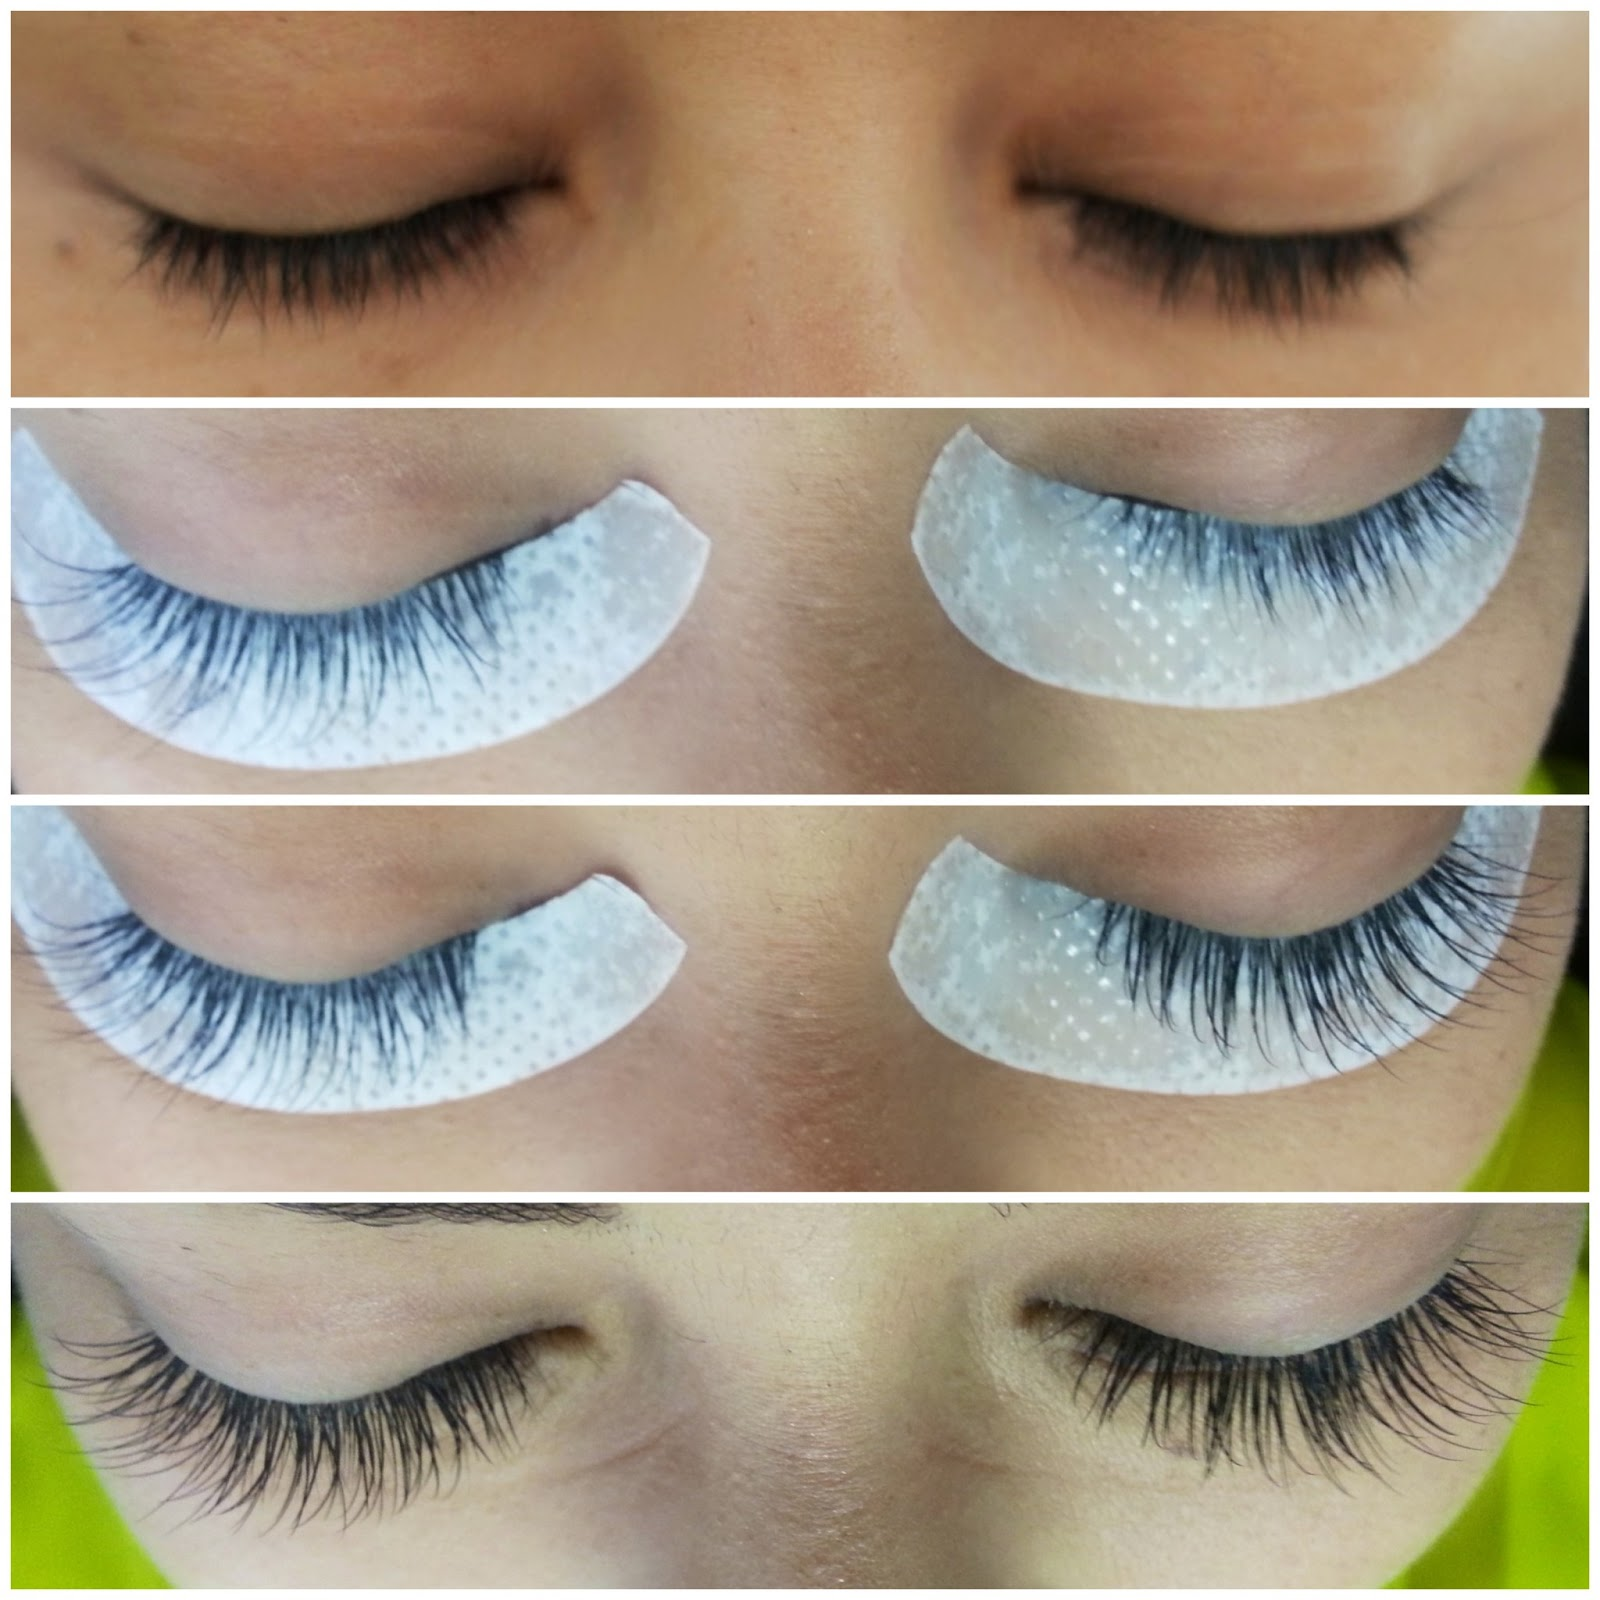 d72c2f66cec For my eyelash extensions I wanted lashes that were demure, yet noticeable.  When I looked in the mirror I was astonished at how natural my eyelash ...